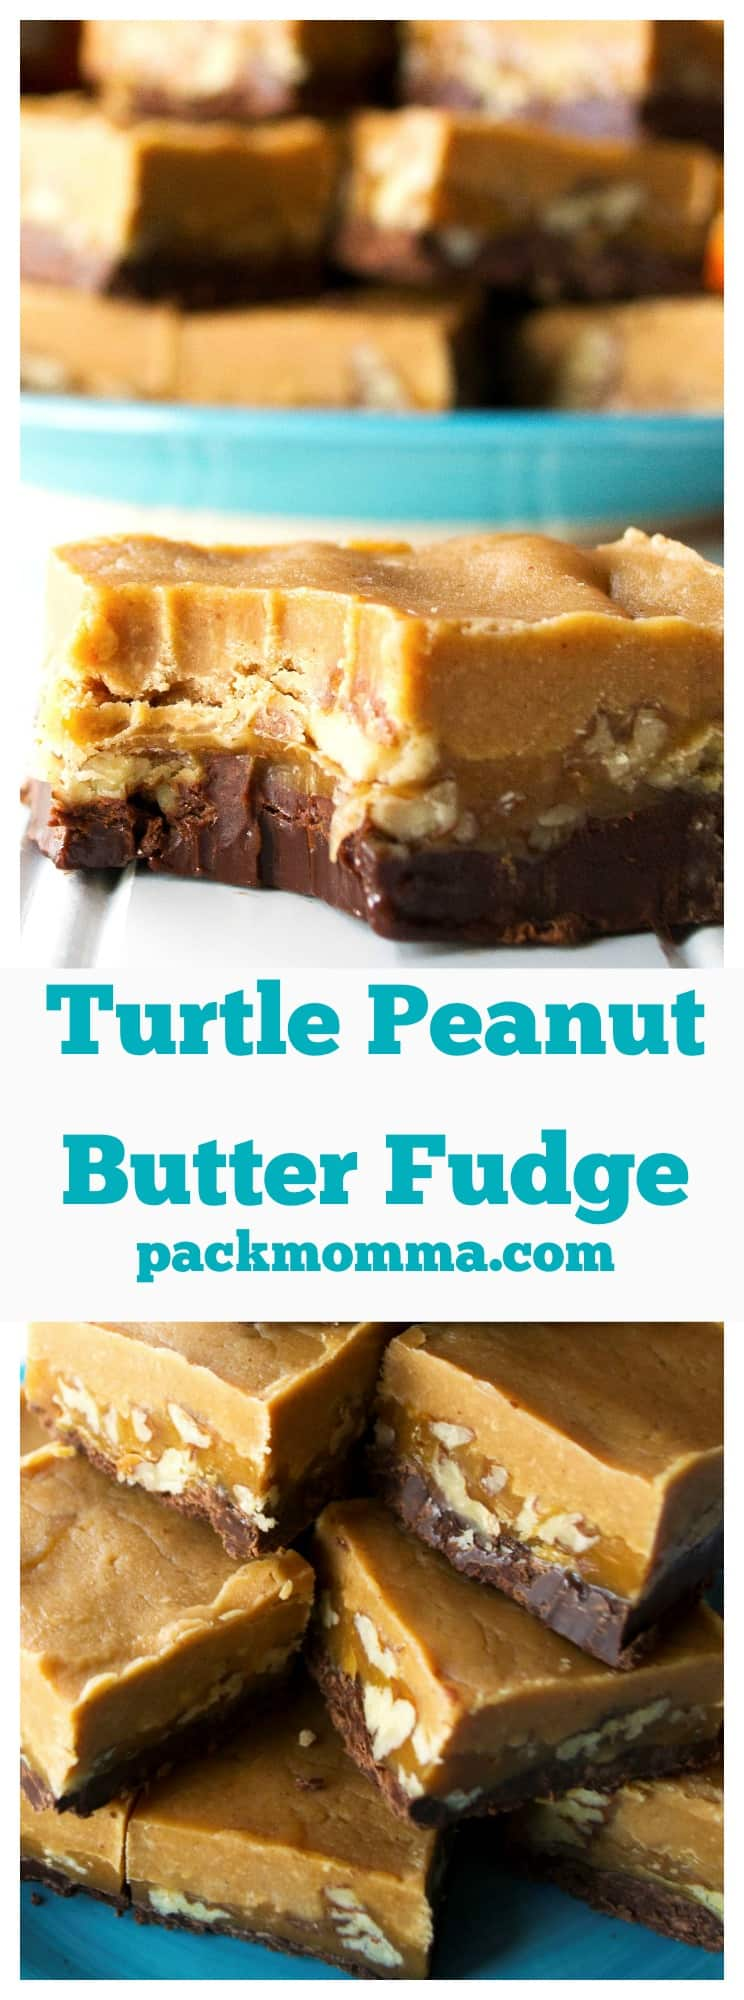 Turtle Peanut Butter Fudge | An easy no-bake recipe for creamy, rich, decadent Turtle Peanut Butter Fudge. | Pack Momma | https://www.packmomma.com